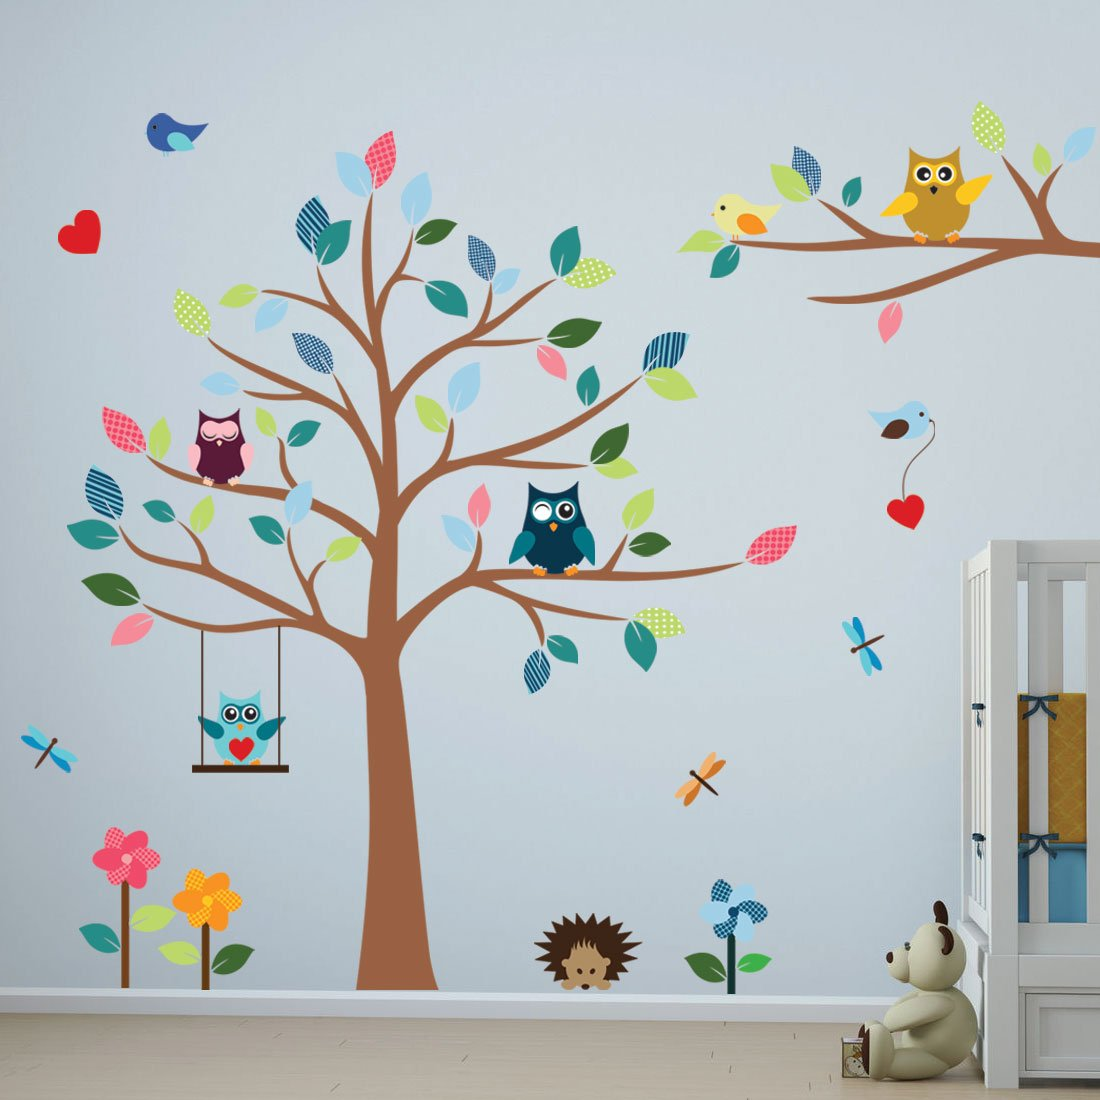 Amazon com timber artbox cheerful nursery wall decals with owls tree best décor for kids room nursery playroom home kitchen